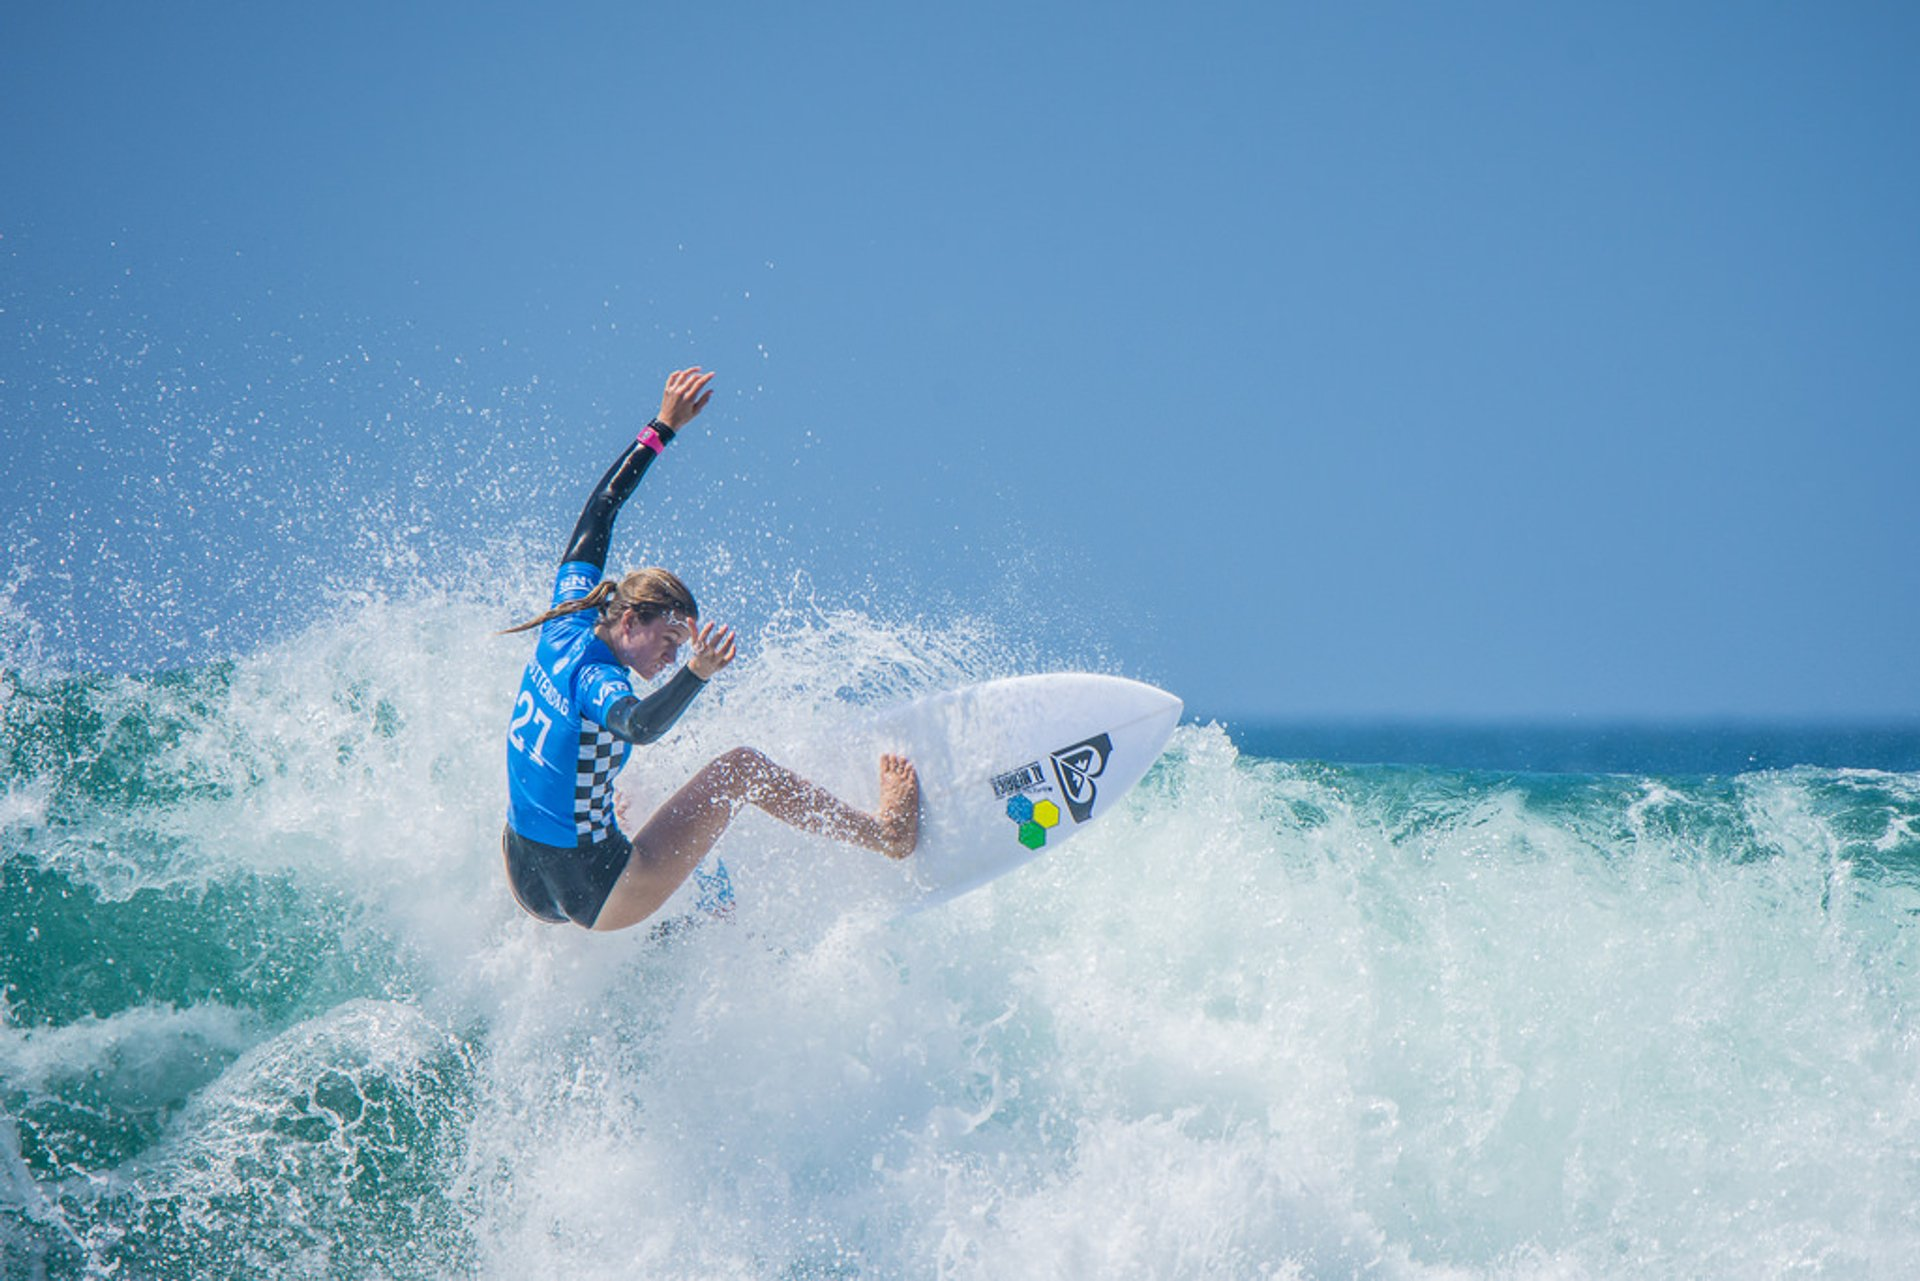 Best time for Vans US Open of Surfing in California 2019